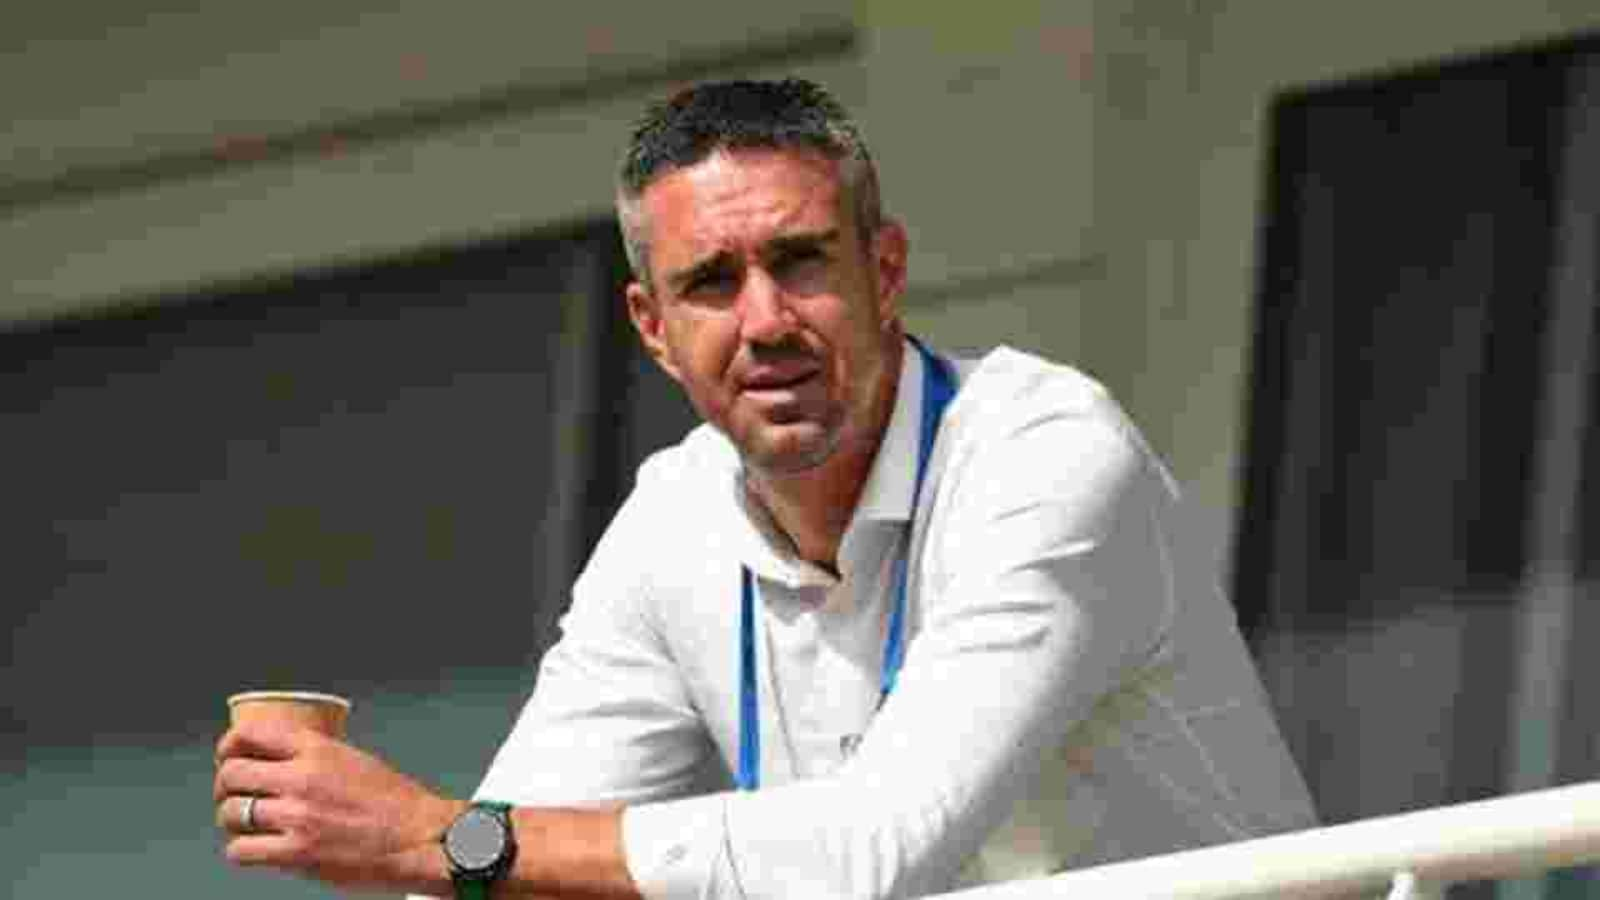 'It's defeatist attitude': Kevin Pietersen says England coach Chris Silverwood should not 'moan' about pitch - Hindustan Times